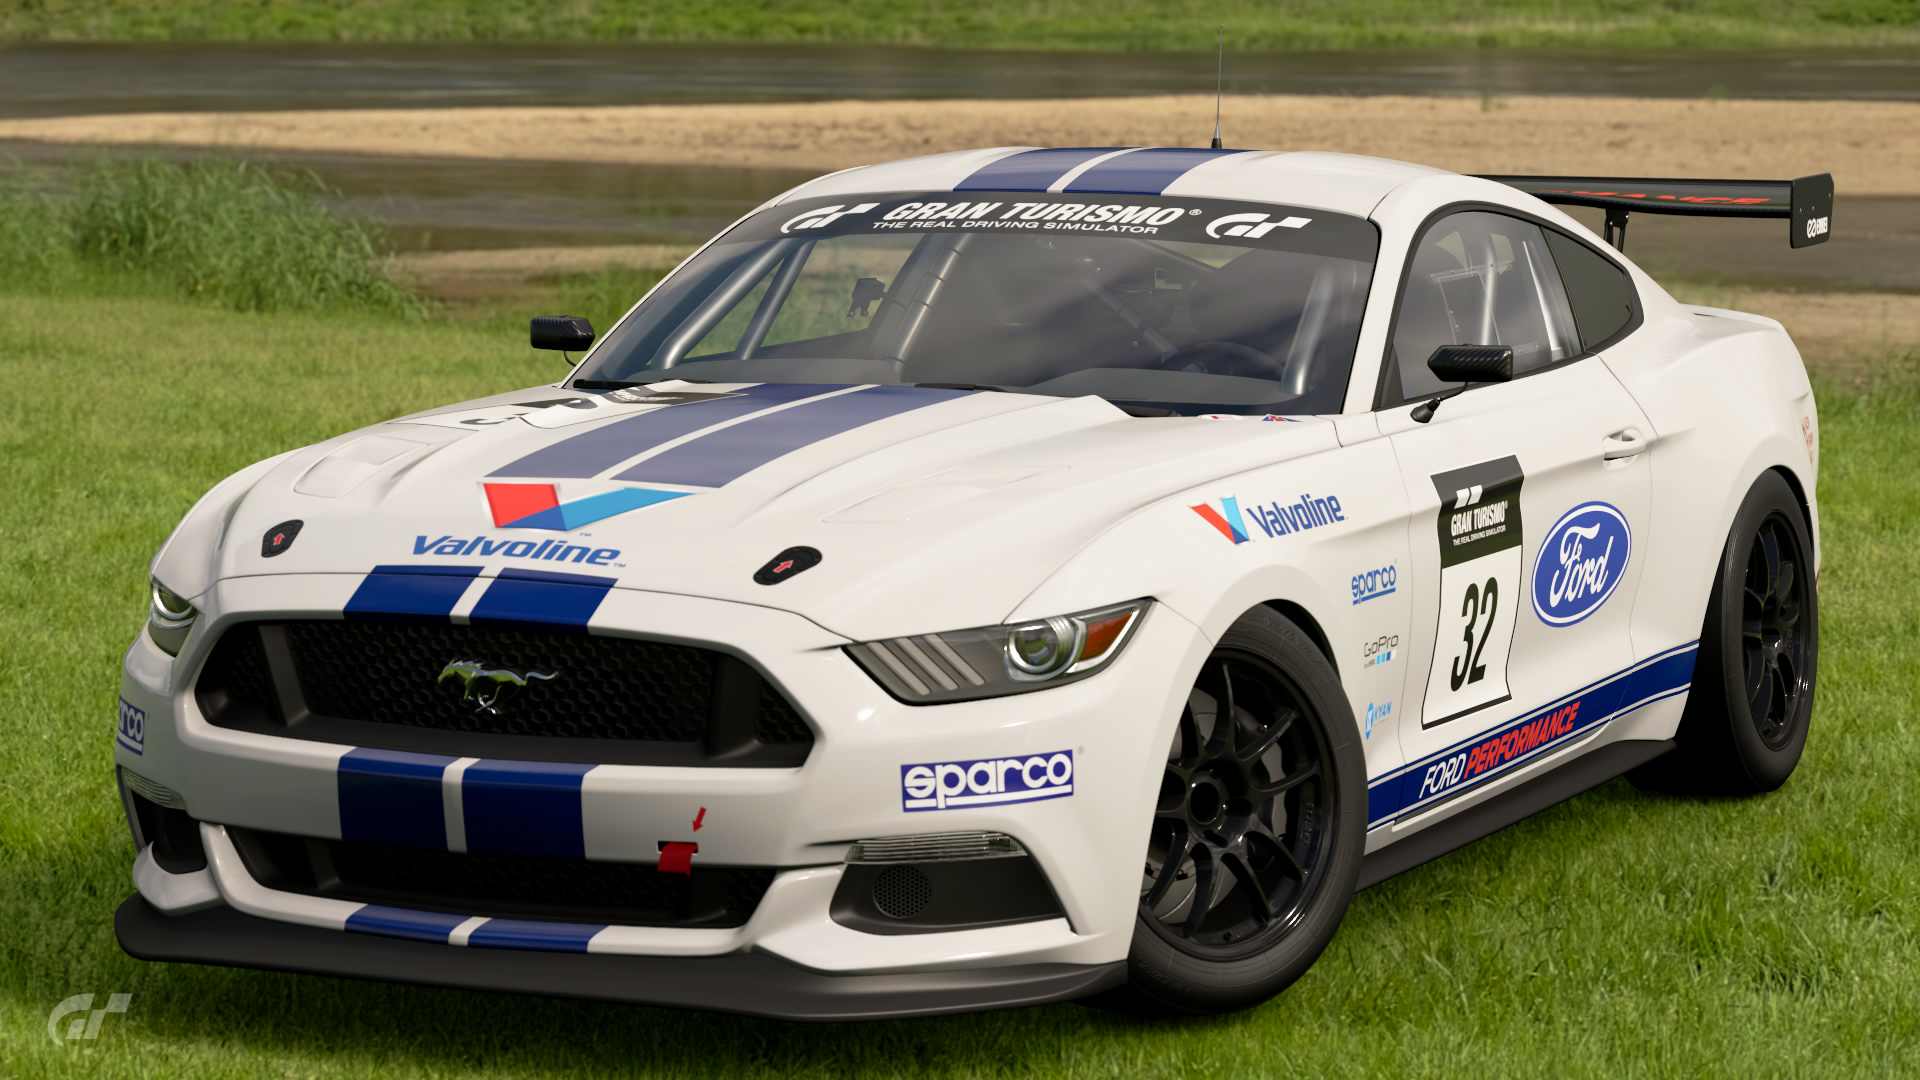 ford mustang gr 4 gran turismo wiki fandom powered by wikia. Black Bedroom Furniture Sets. Home Design Ideas